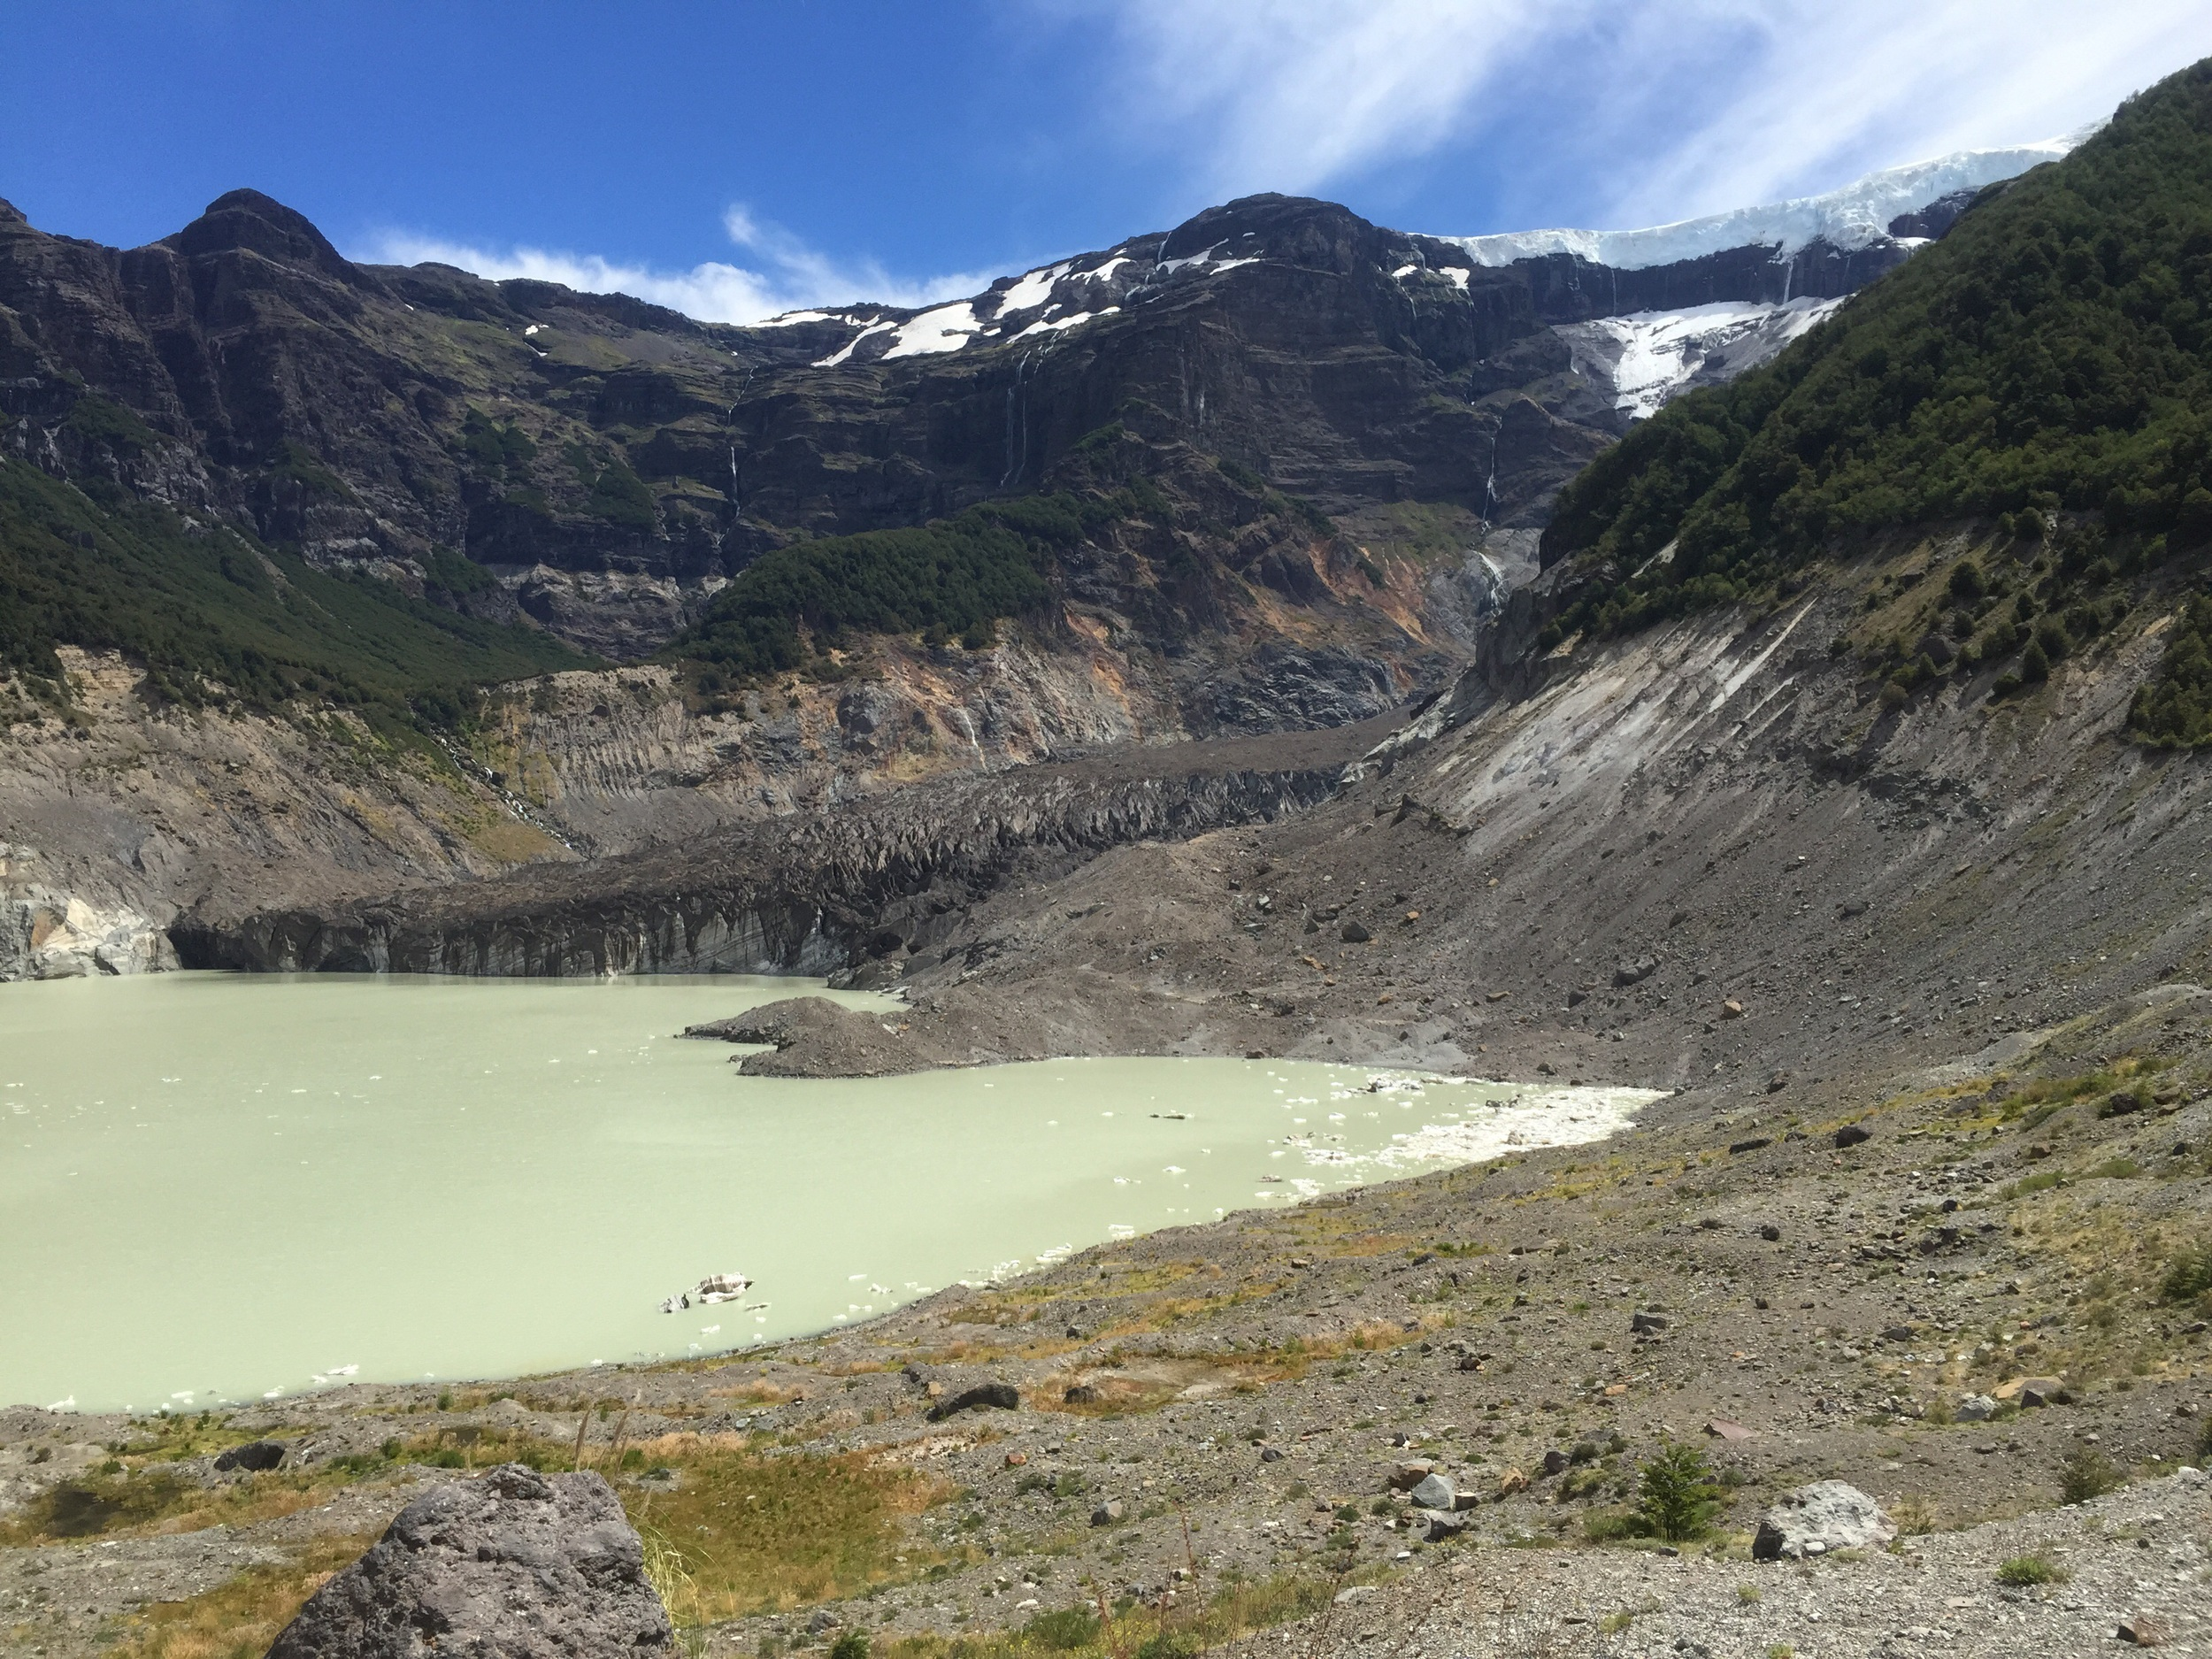 The Black Glacier and its melt lagoon.